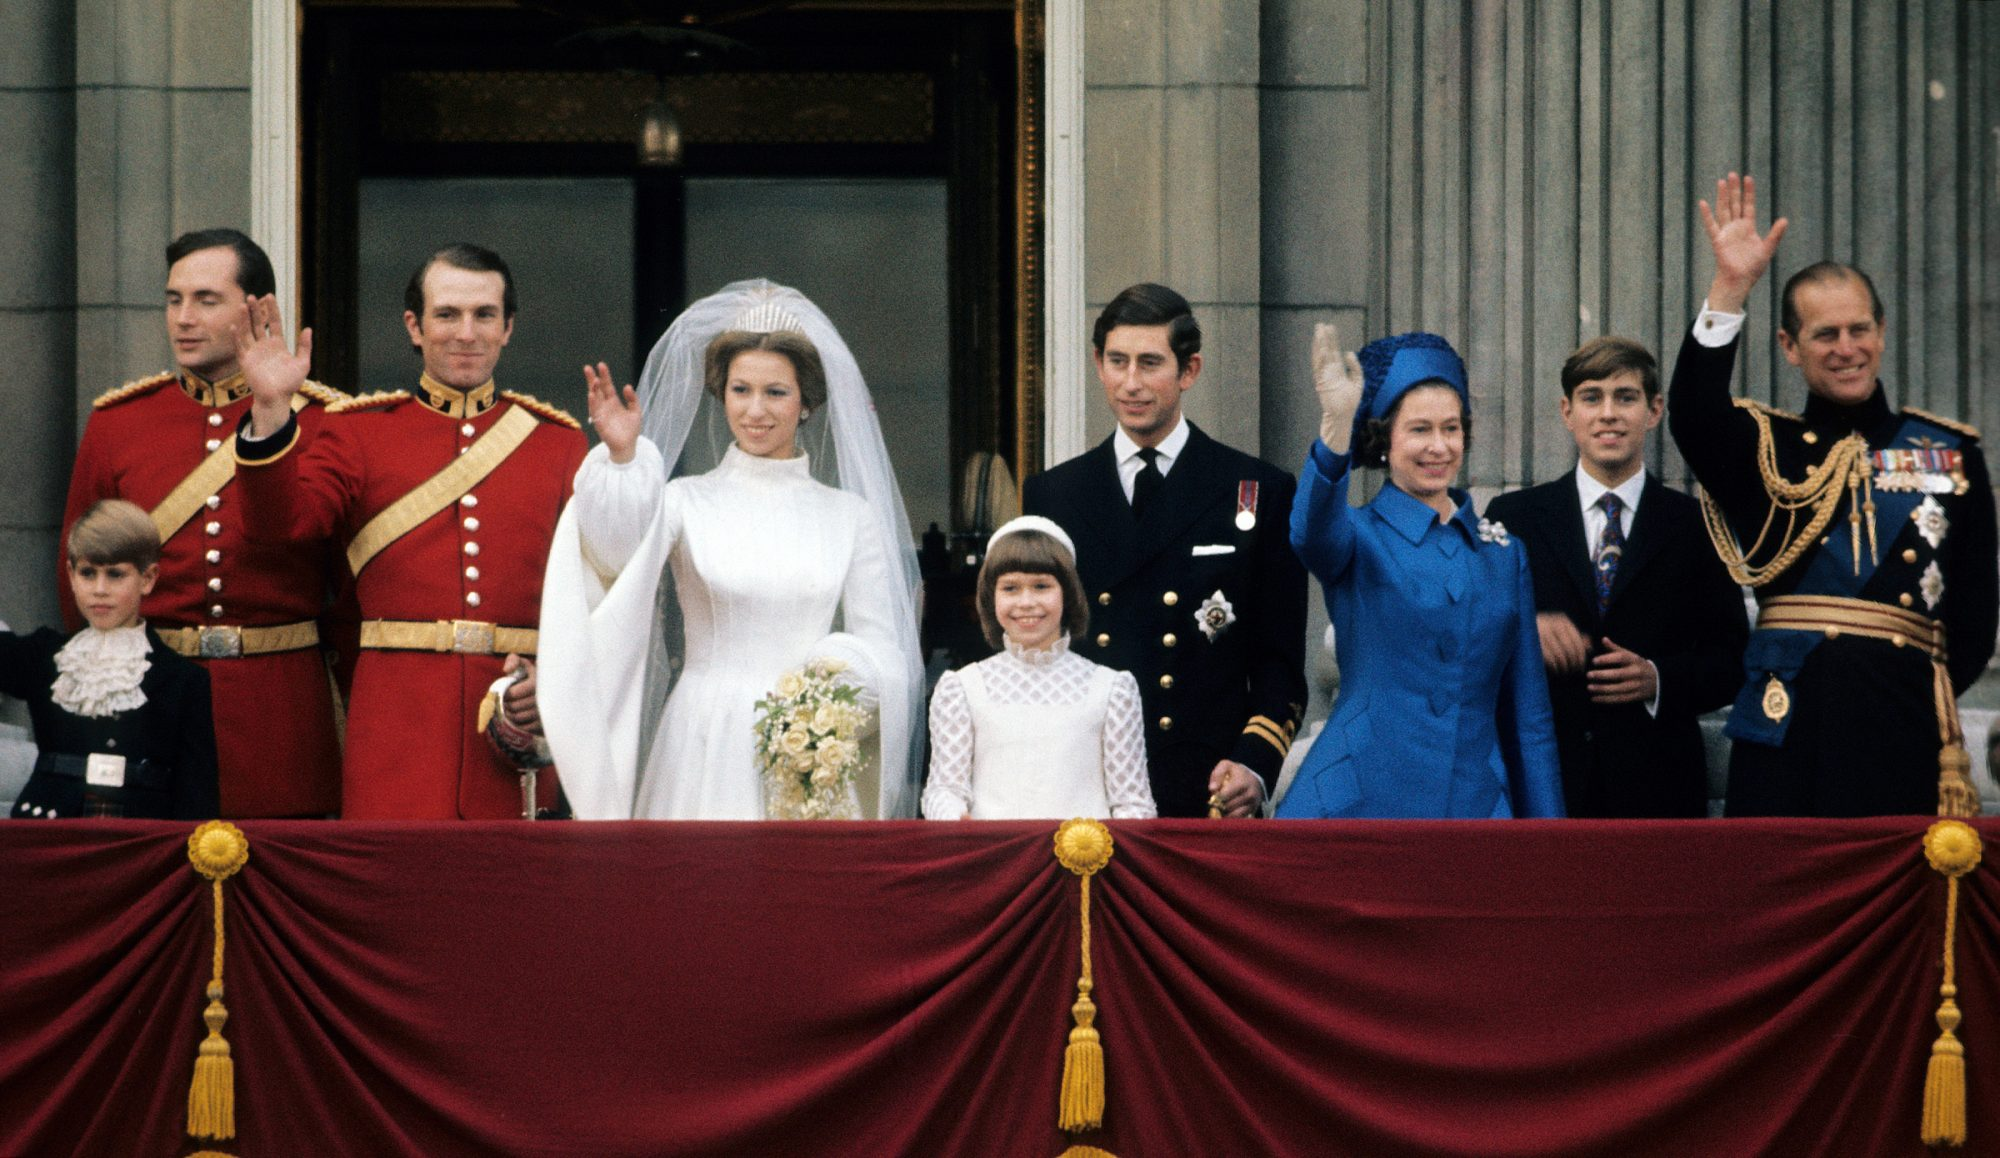 Princess Anne, Princess Royal and Mark Phillips (3rd from left) wave from the balcony of Buckingham Palace following their wedding with Prince Edward, Earl of Wessex (L), Prince Charles, Prince of Wales (4th from right), Queen Elizabeth II (3rd from right), Prince Andrew, Duke of York (2nd right) and Prince Philip, Duke of Edinburgh on November 14, 1973 in London, England.